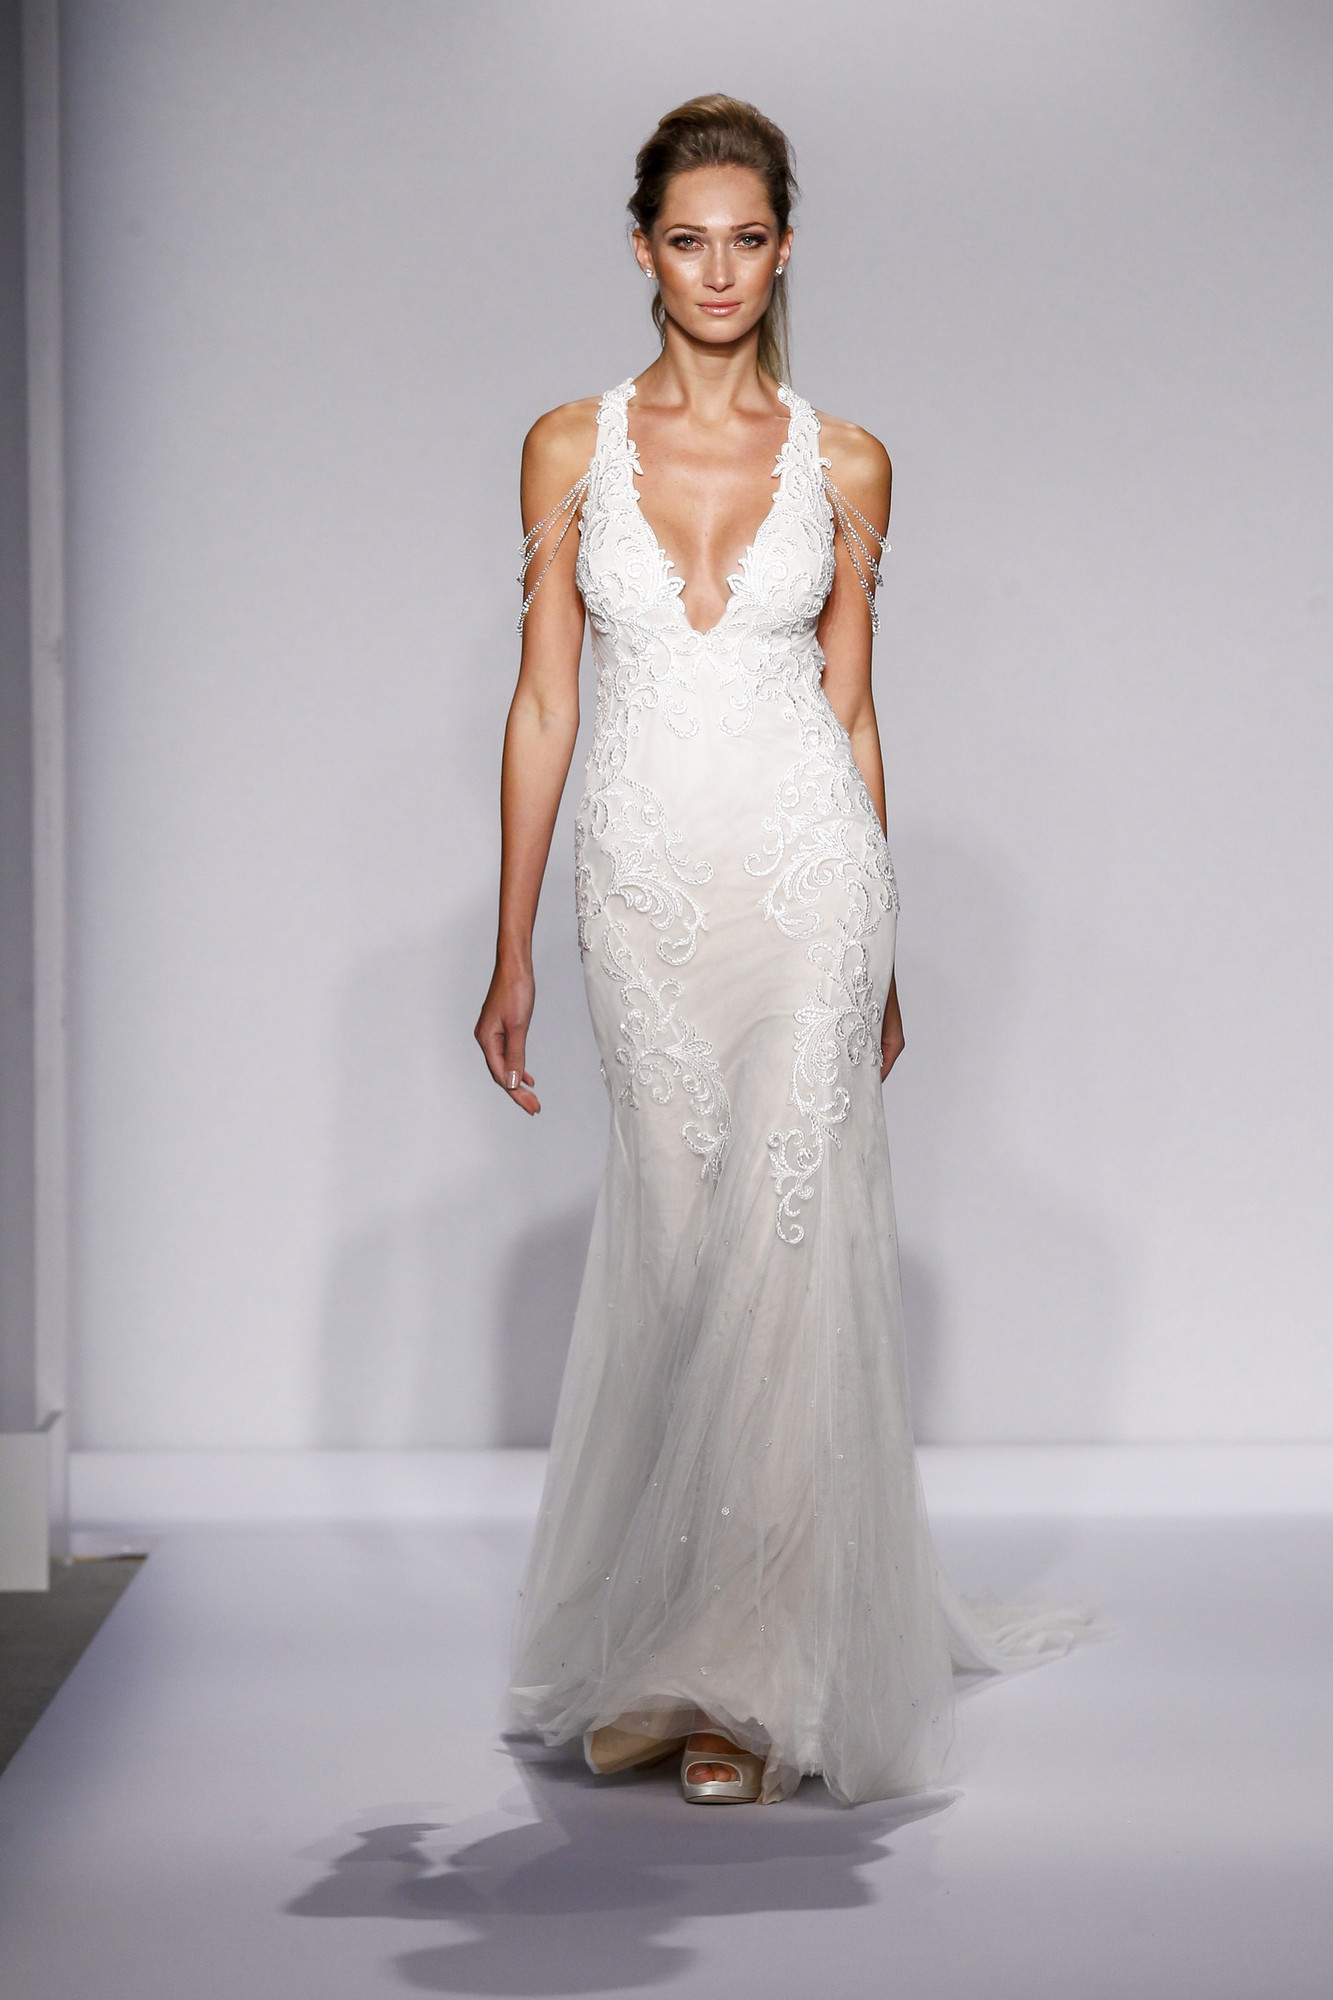 Fw16 pninatornai 111 mermaid wedding dress by pnina tornai for Pnina tornai wedding dresses prices